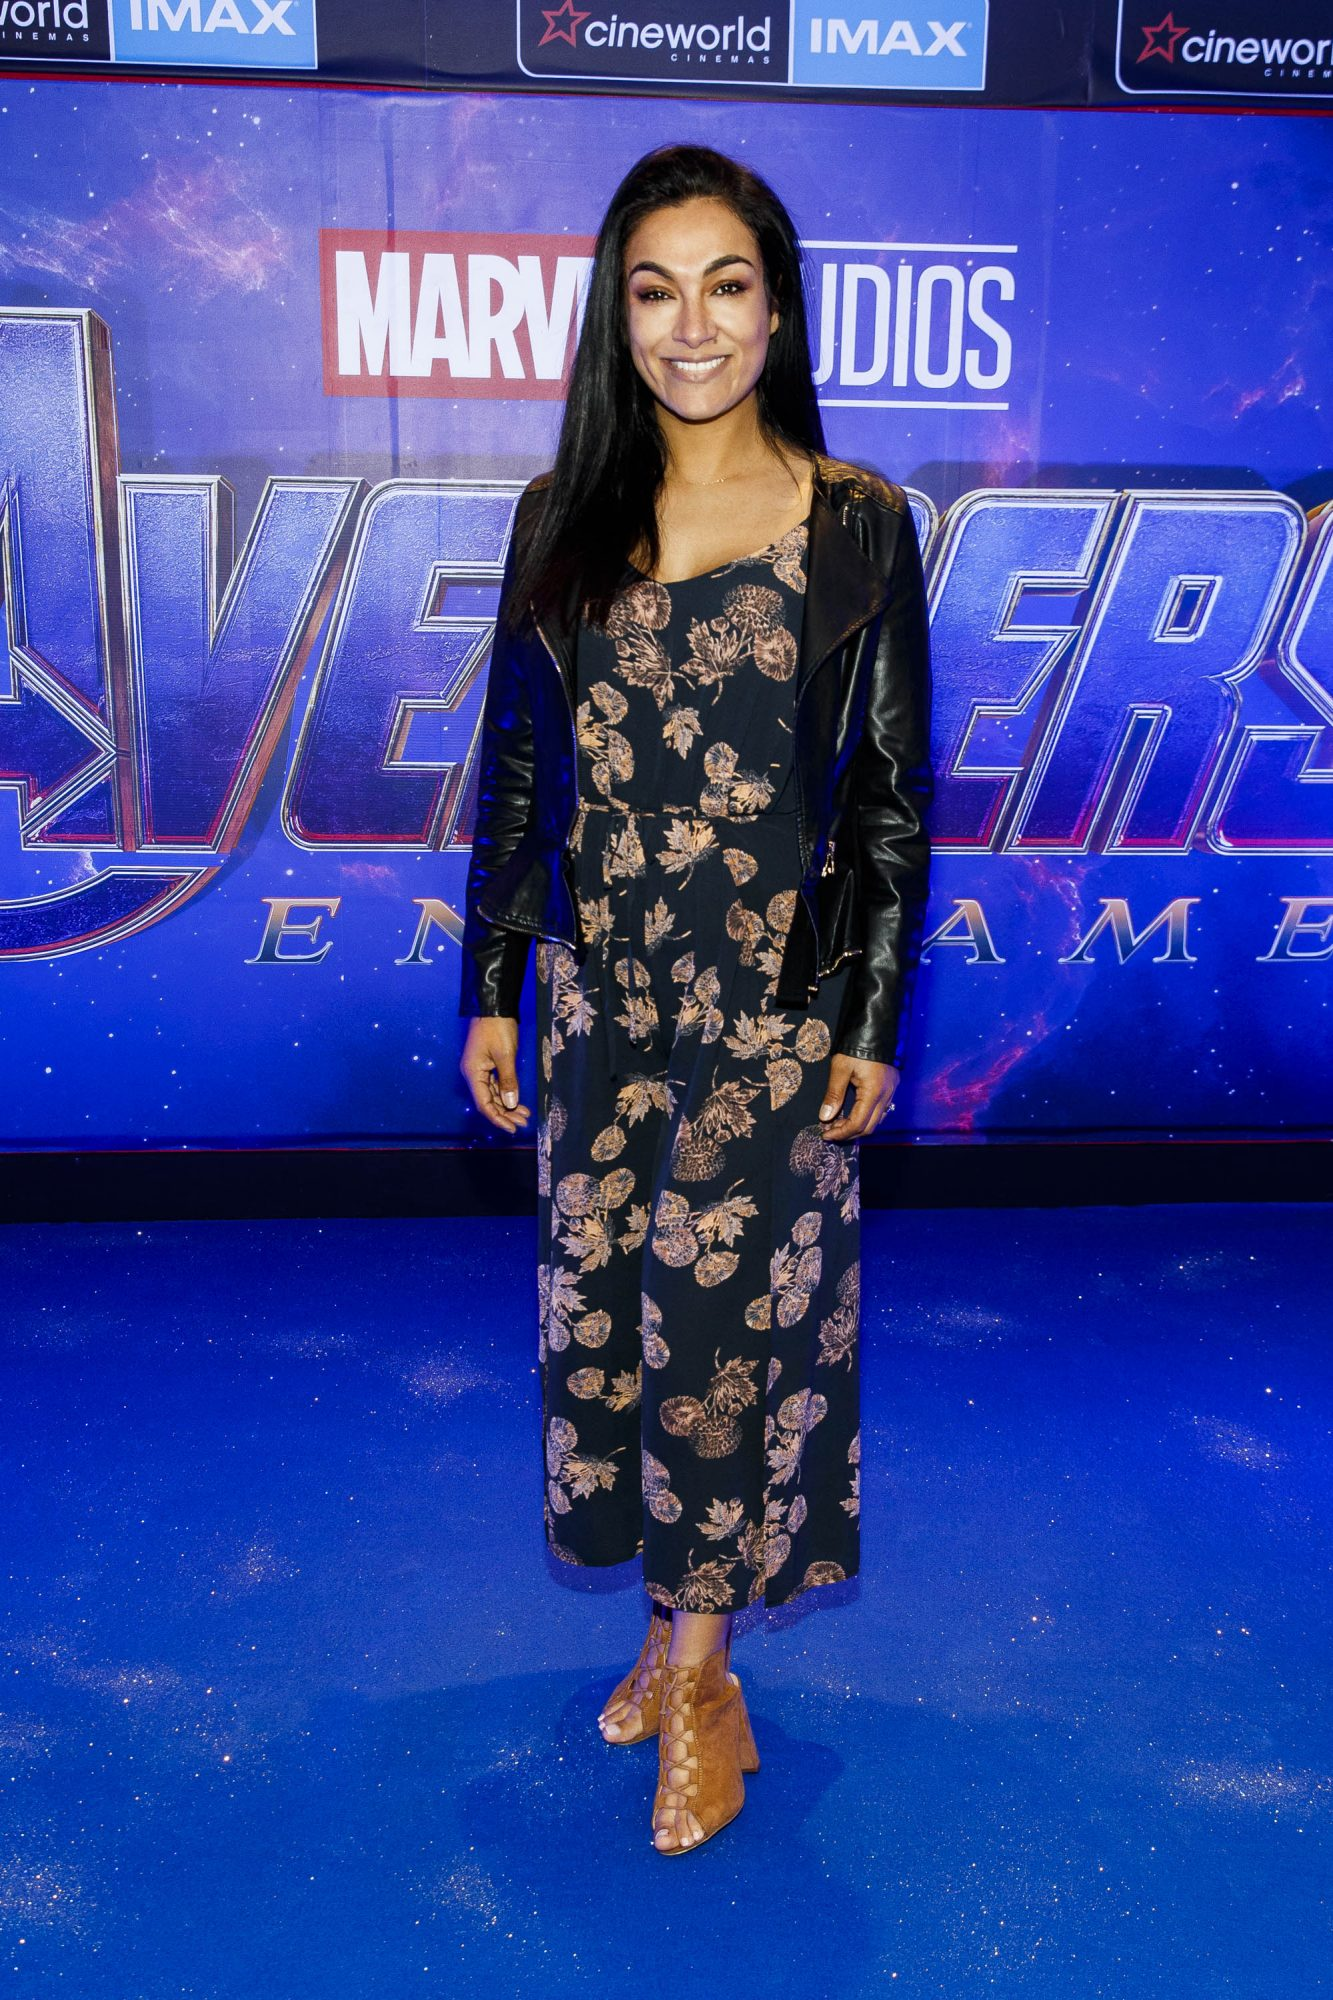 Gail Kaneswaran pictured at the special preview screening of Marvel Studios' Avengers: Endgame at Cineworld Dublin. Picture by: Andres Poveda